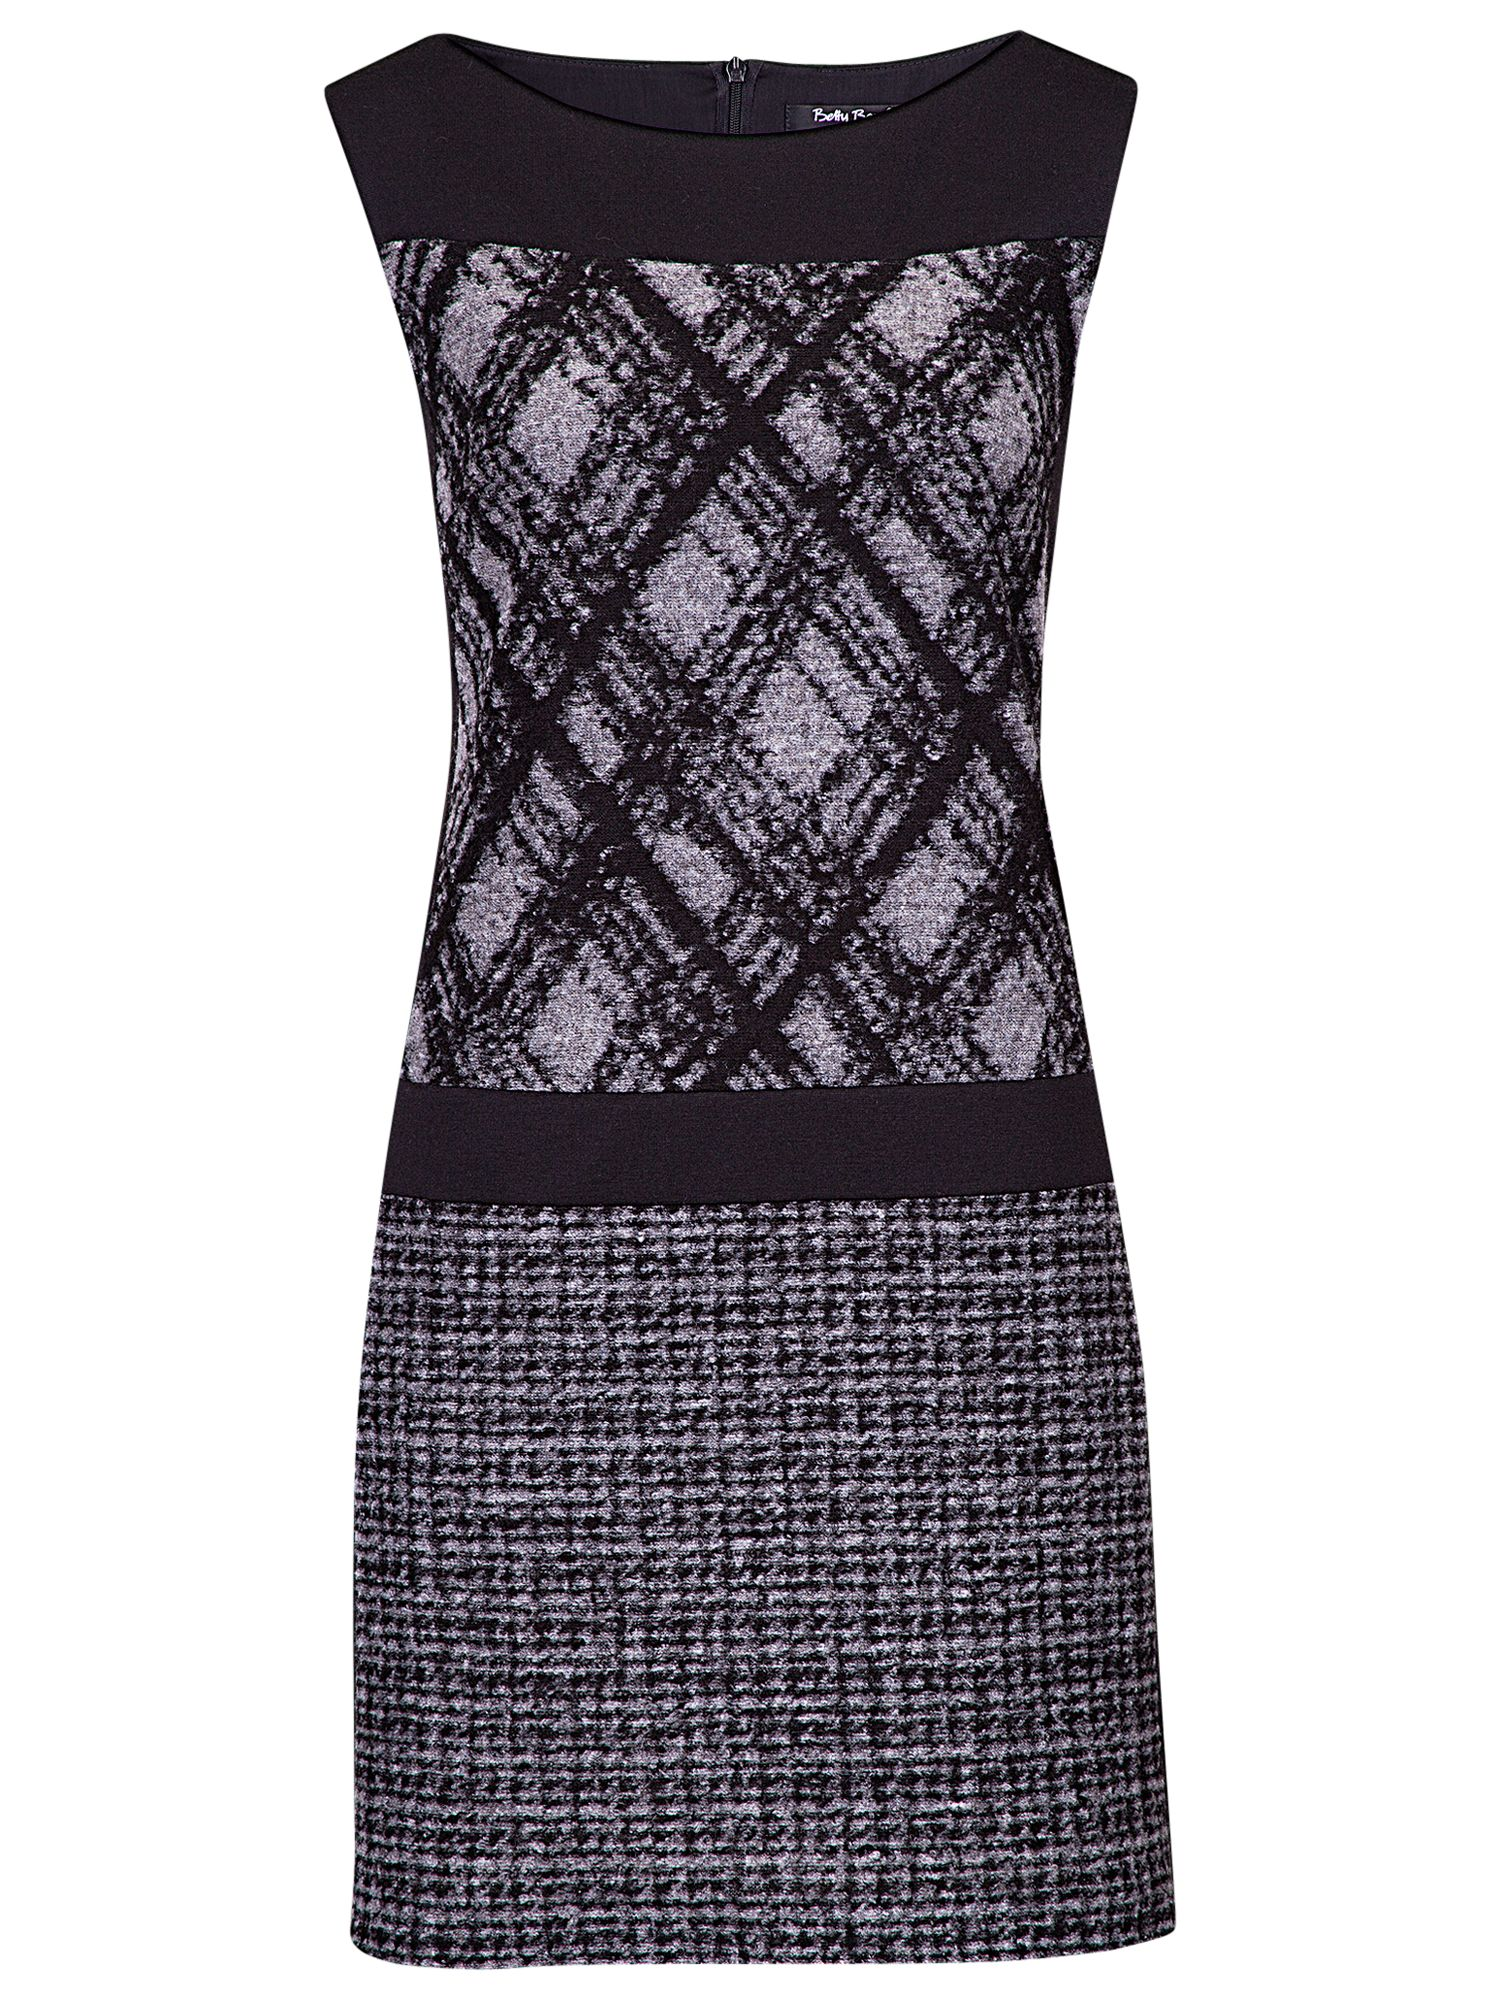 betty barclay shift check dress black, betty, barclay, shift, check, dress, black, betty barclay, 18|16|20, clearance, womenswear offers, womens dresses offers, women, plus size, inactive womenswear, new reductions, womens dresses, special offers, 1613597